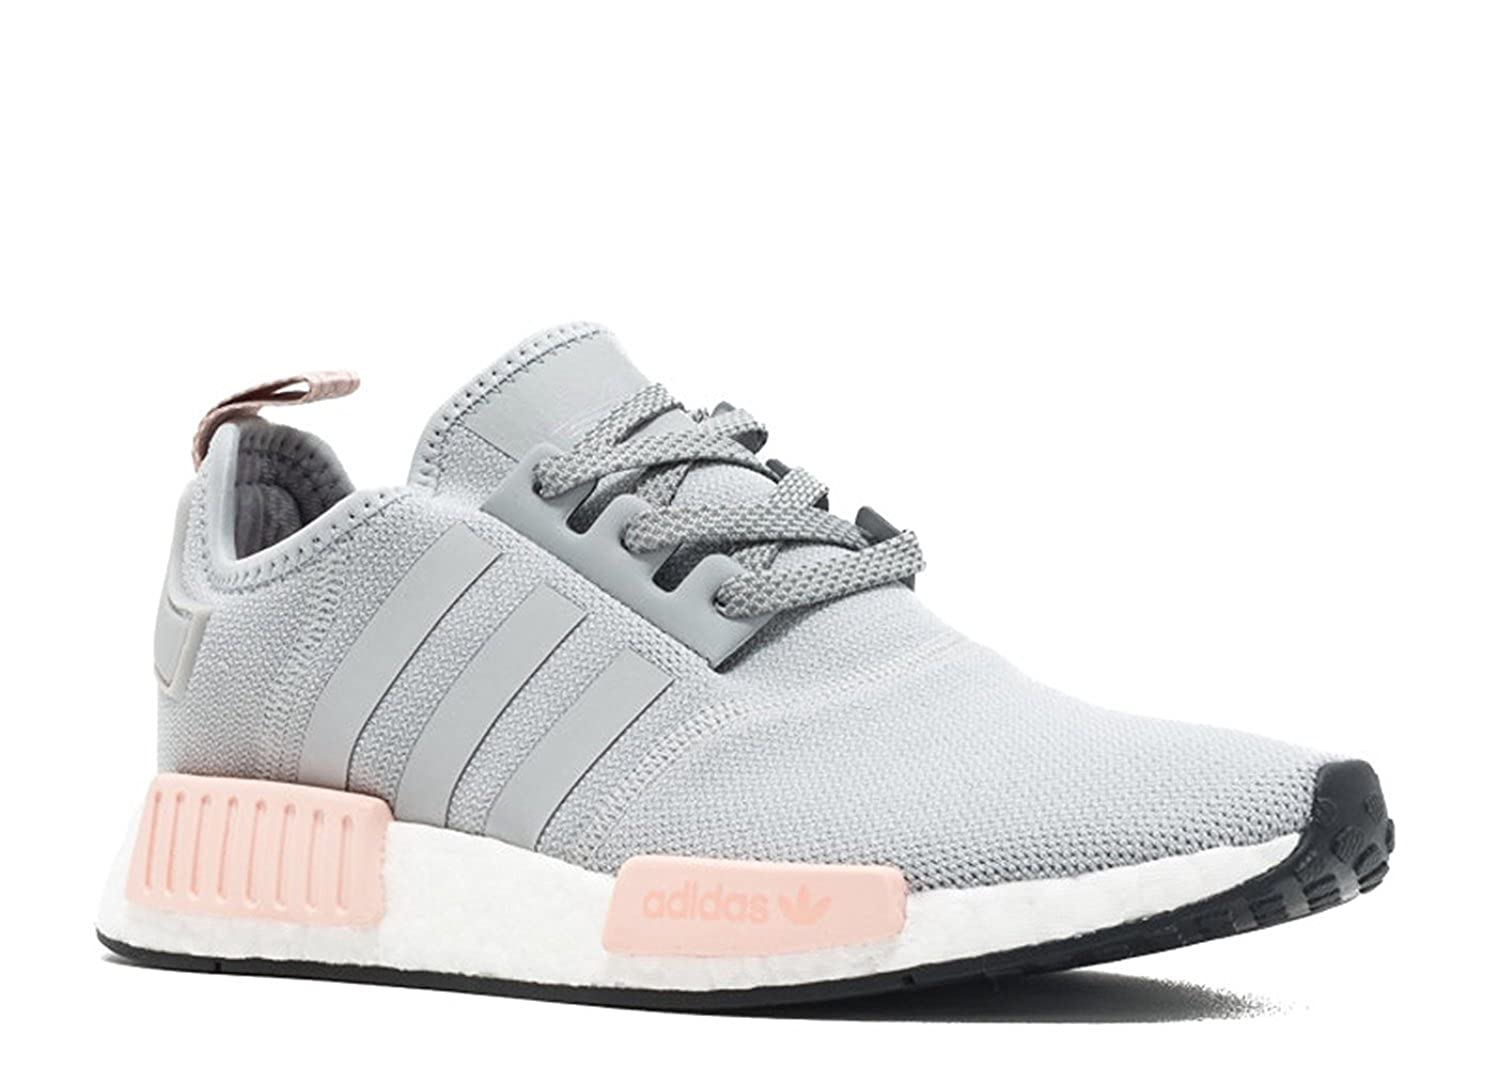 64ab3244b79 adidas NMD R1 Womens Offspring By3058 Clear Onix Light Pink US 7.5   Amazon.co.uk  Shoes   Bags